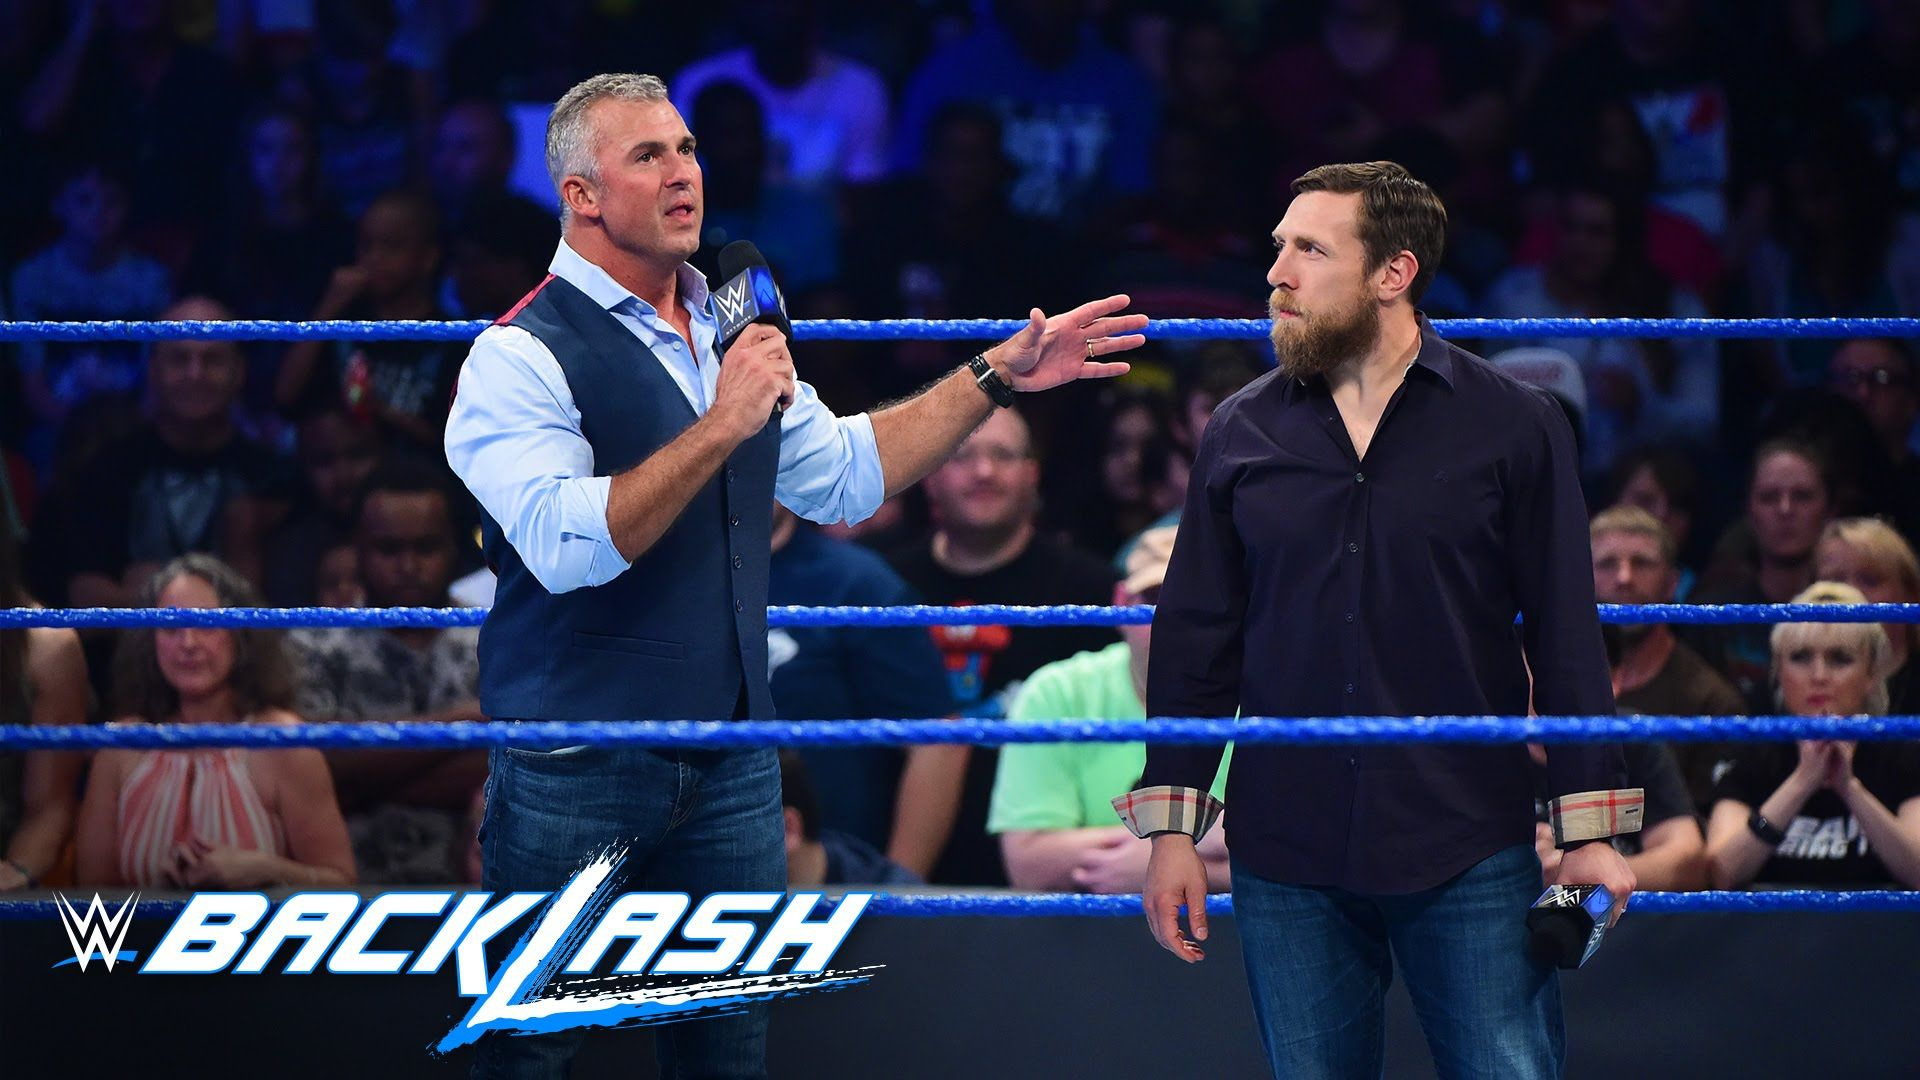 Shane McMahon & Daniel Bryan kick off the first SmackDown LIVE pay-per-v...